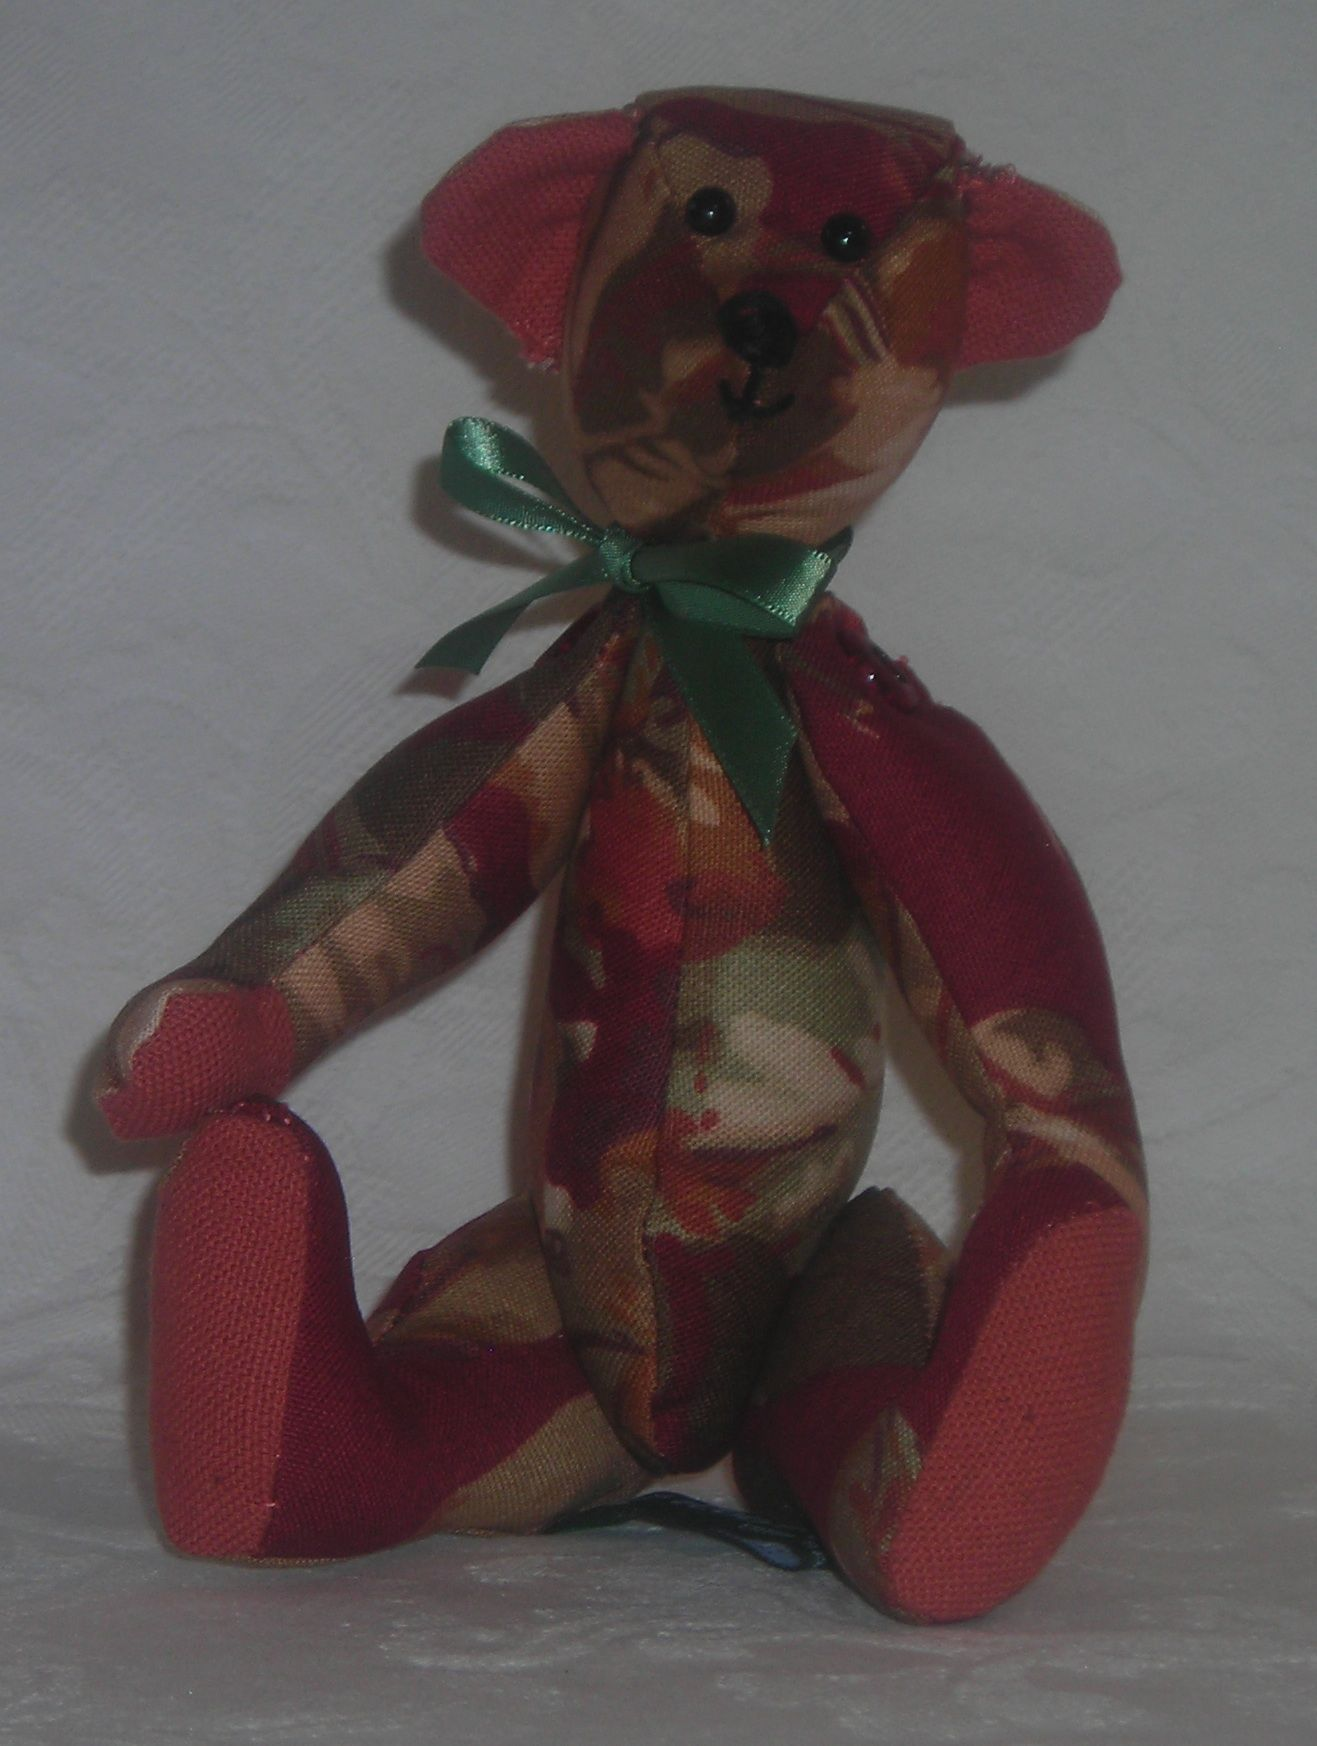 May. She is made from a cotton floral fabric with linen accents. www.facebook.com/TBearspicnic